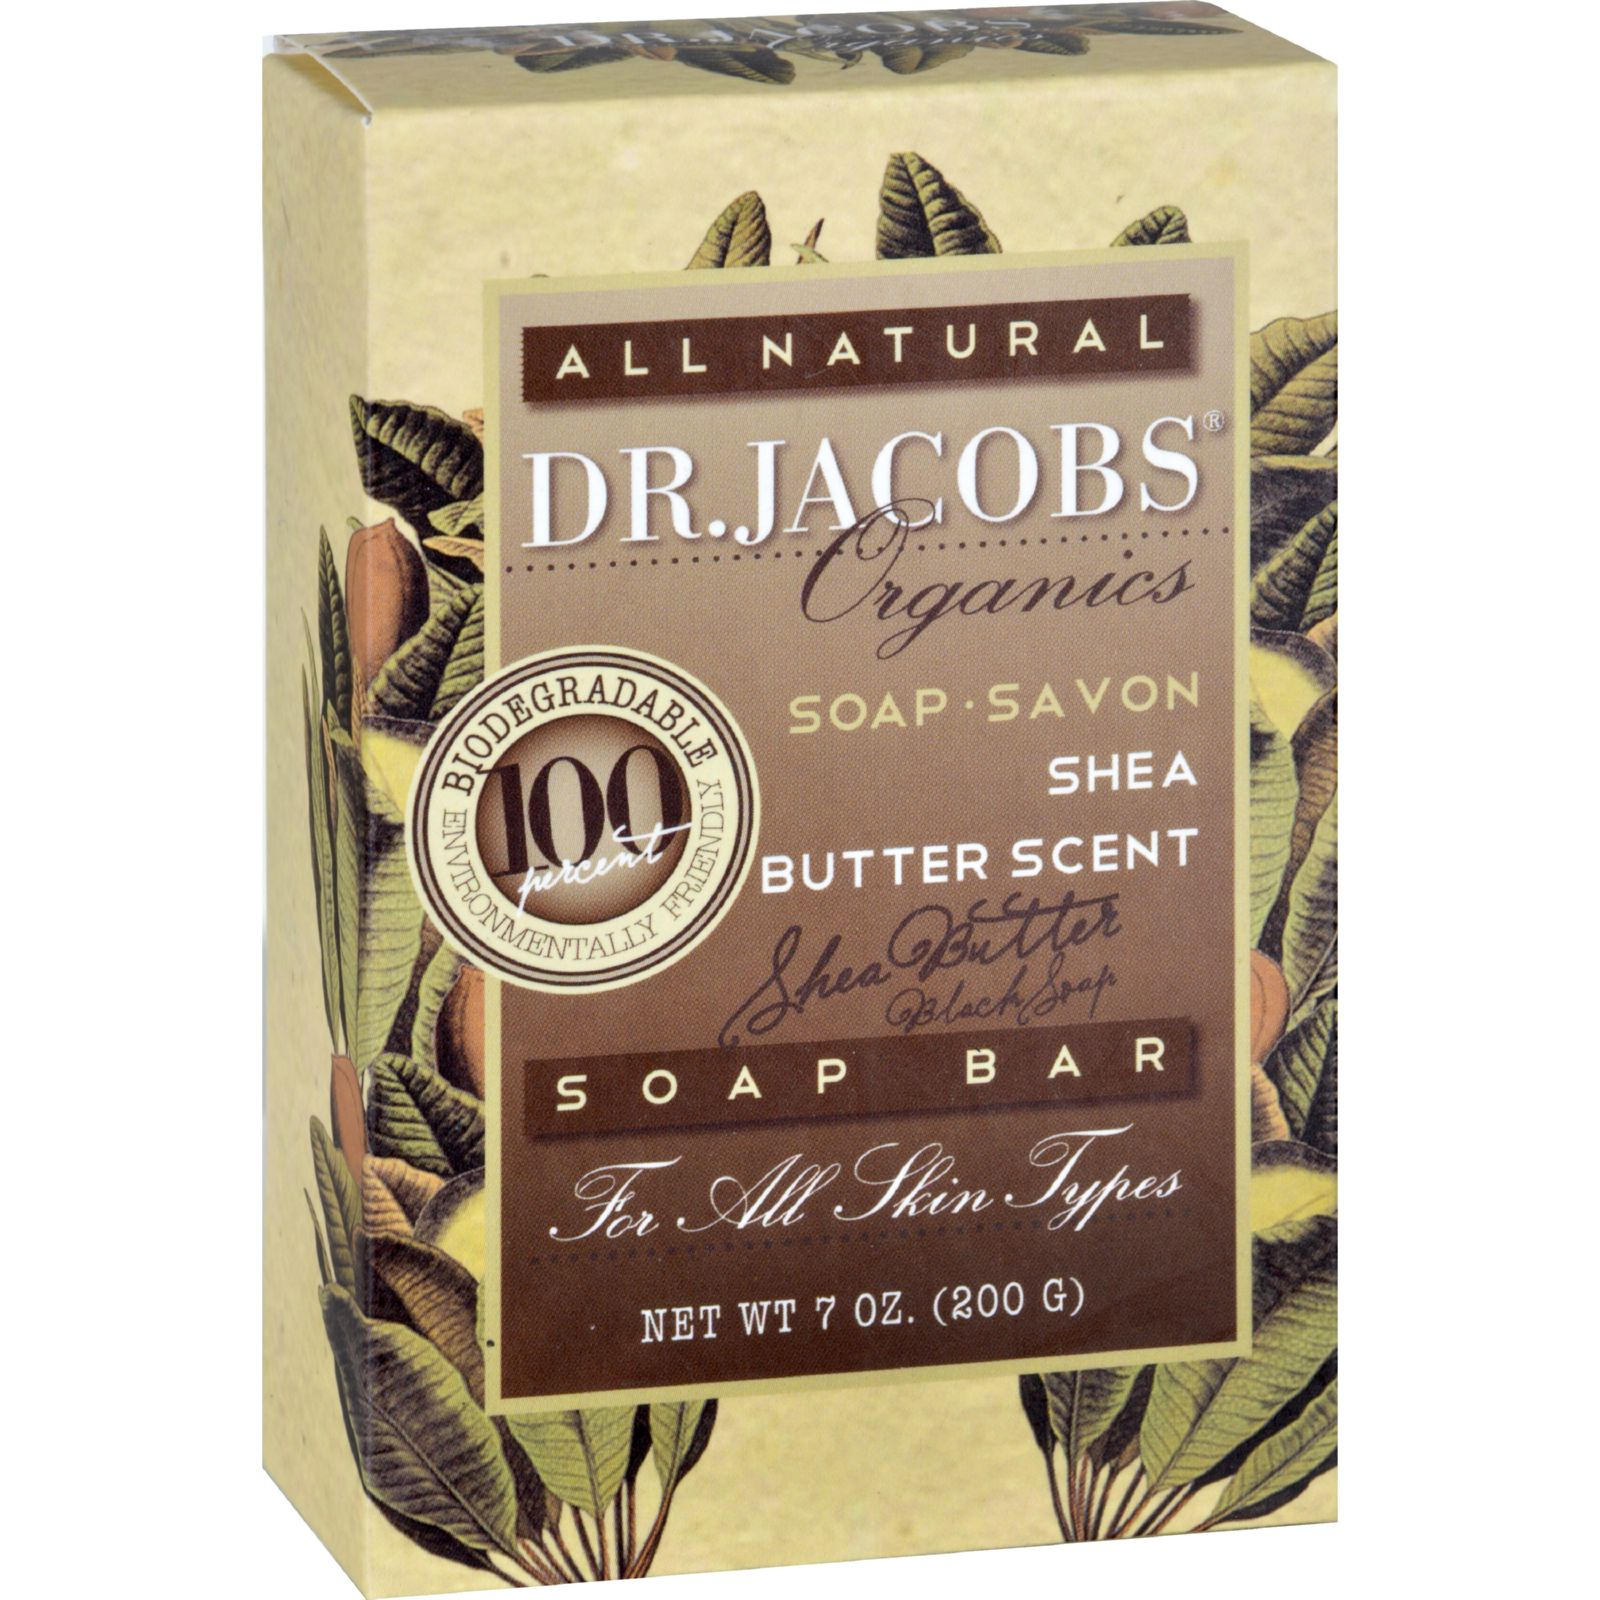 Dr. Jacobs Naturals Bar Soap Castile Shea Butter 6.5 oz